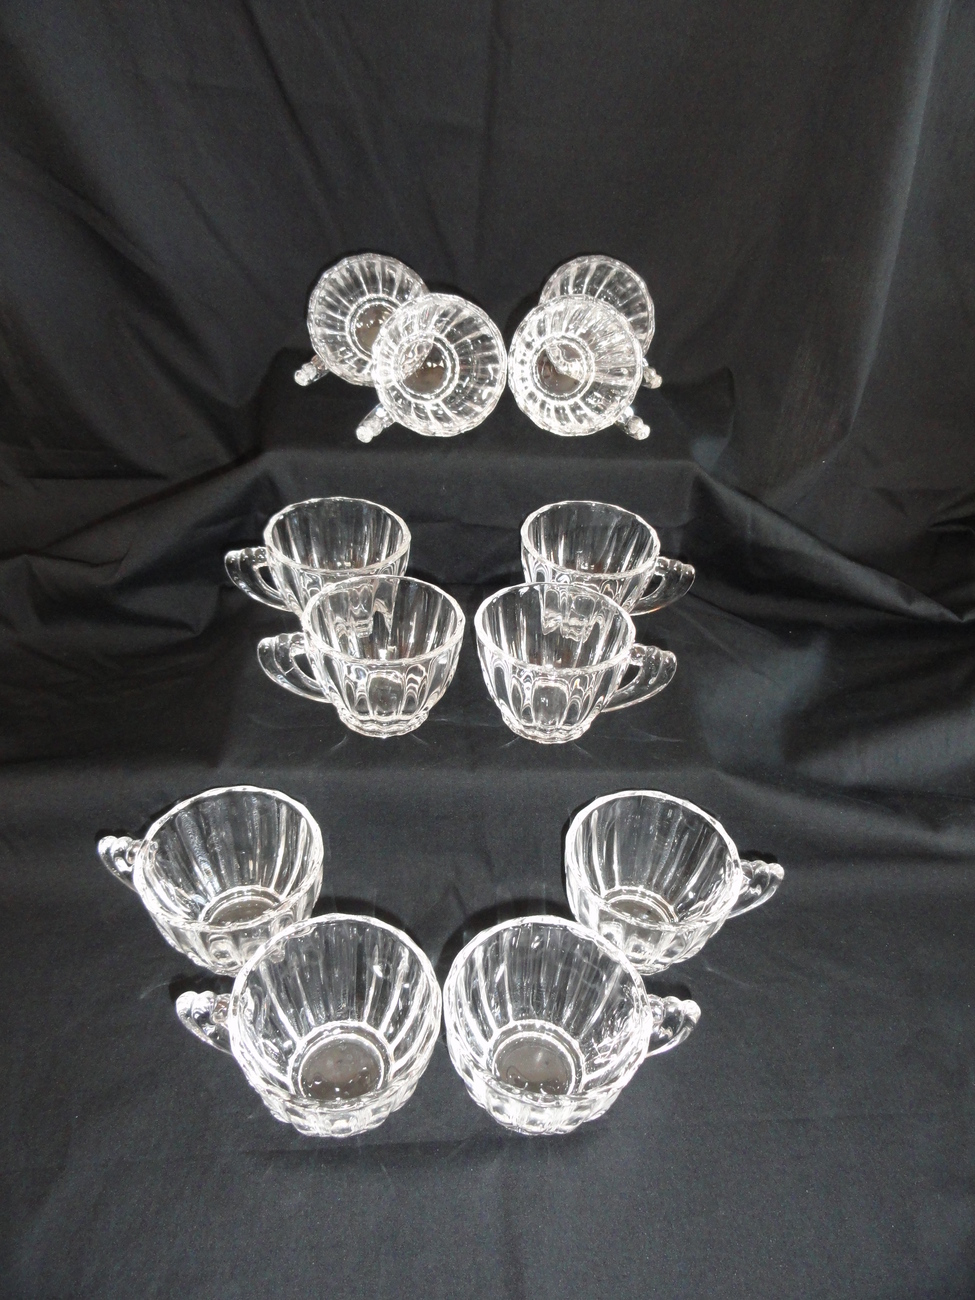 Heisey Elegant Glass Crystolite 15 Pc Punch Bowl Set W/ Under Plate Ladle & Cups